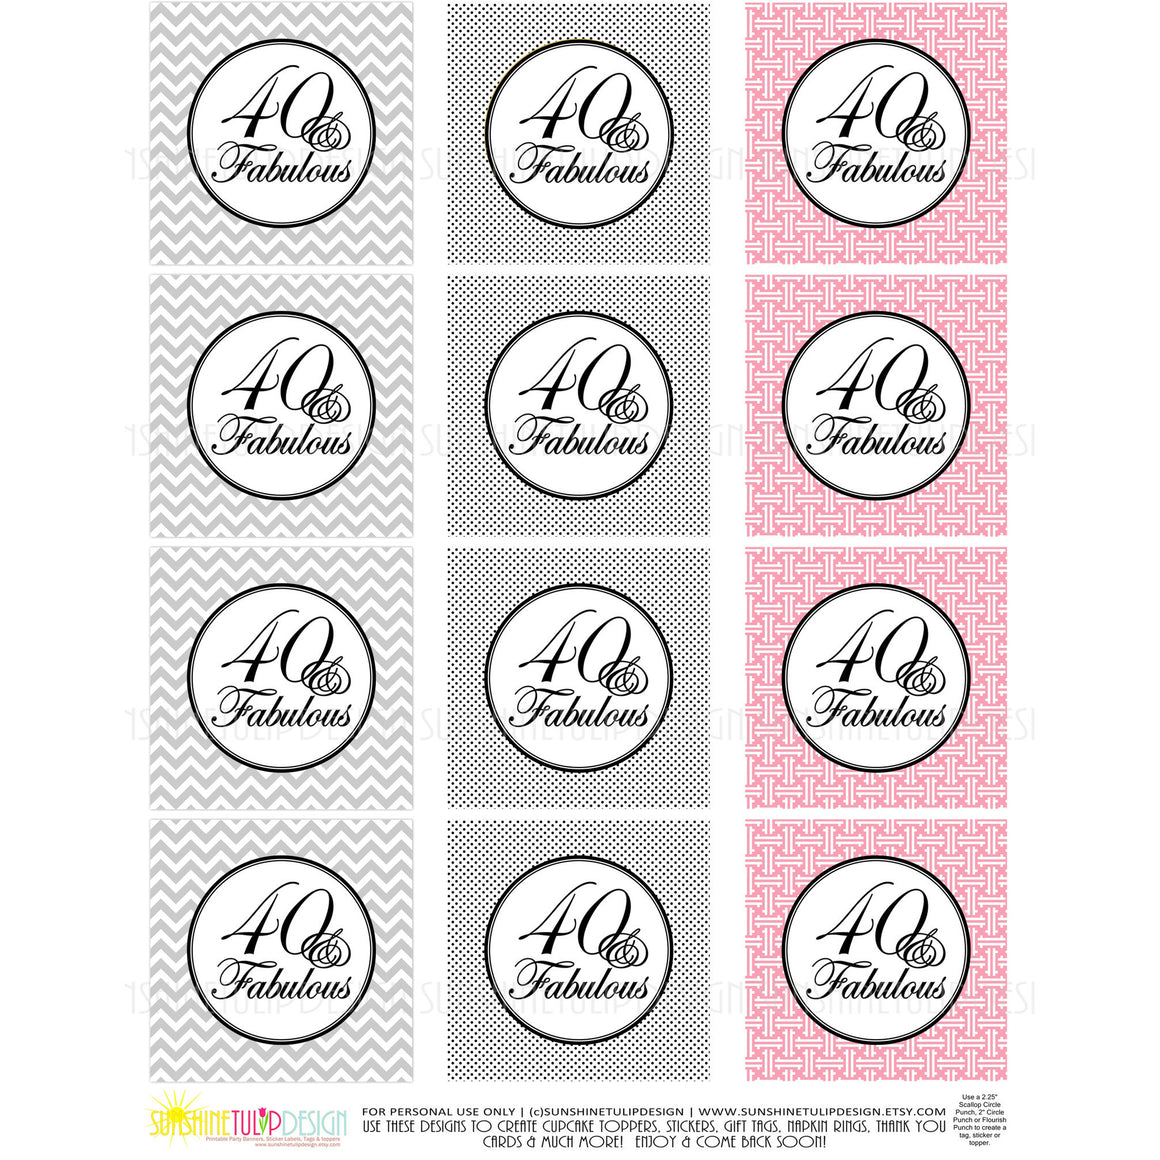 Printable 40 and Fabulous Black Gray & Pink Birthday Cupcake Toppers, Sticker Labels & Party Favor Tags - Sunshinetulipdesign